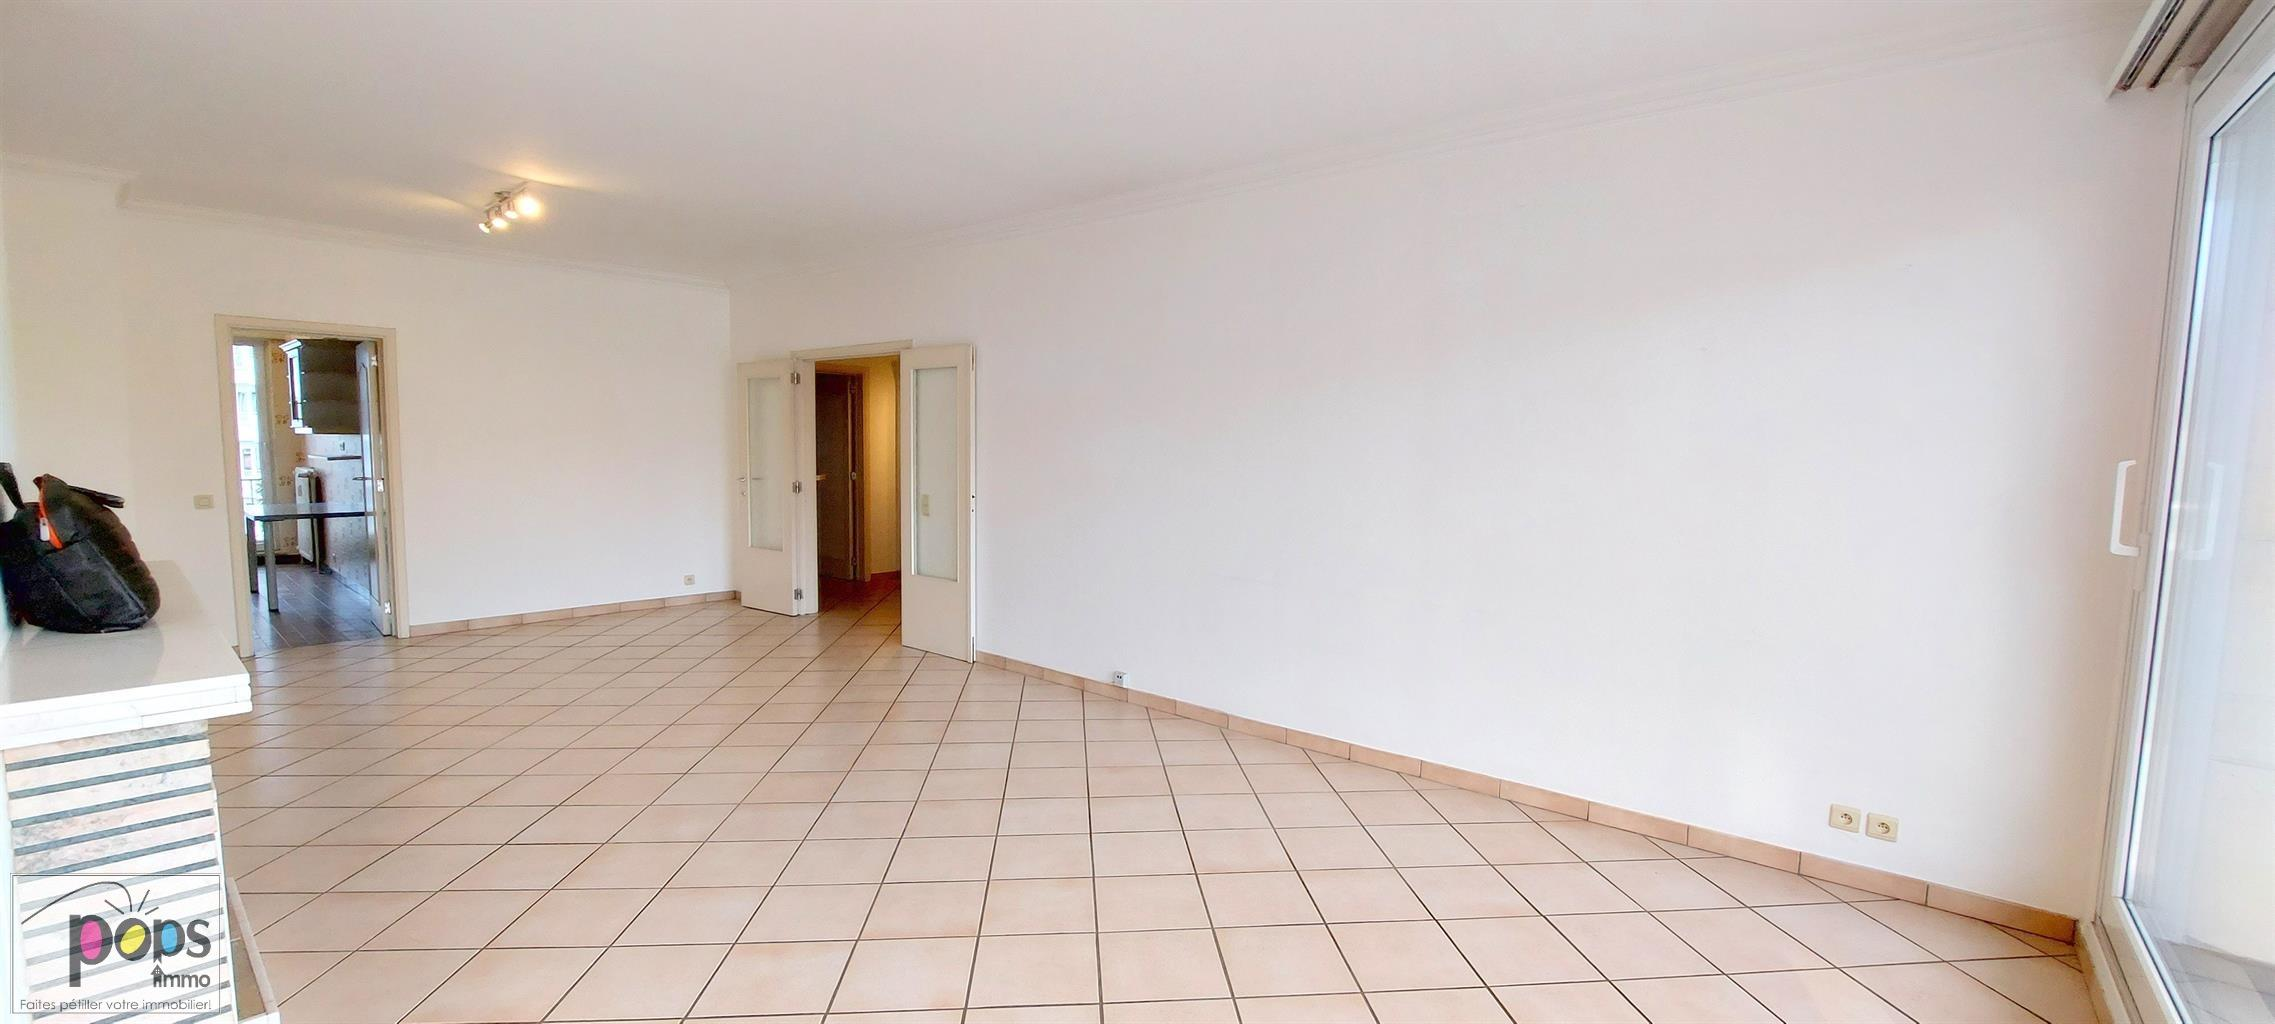 Appartement - Uccle - #4311863-10